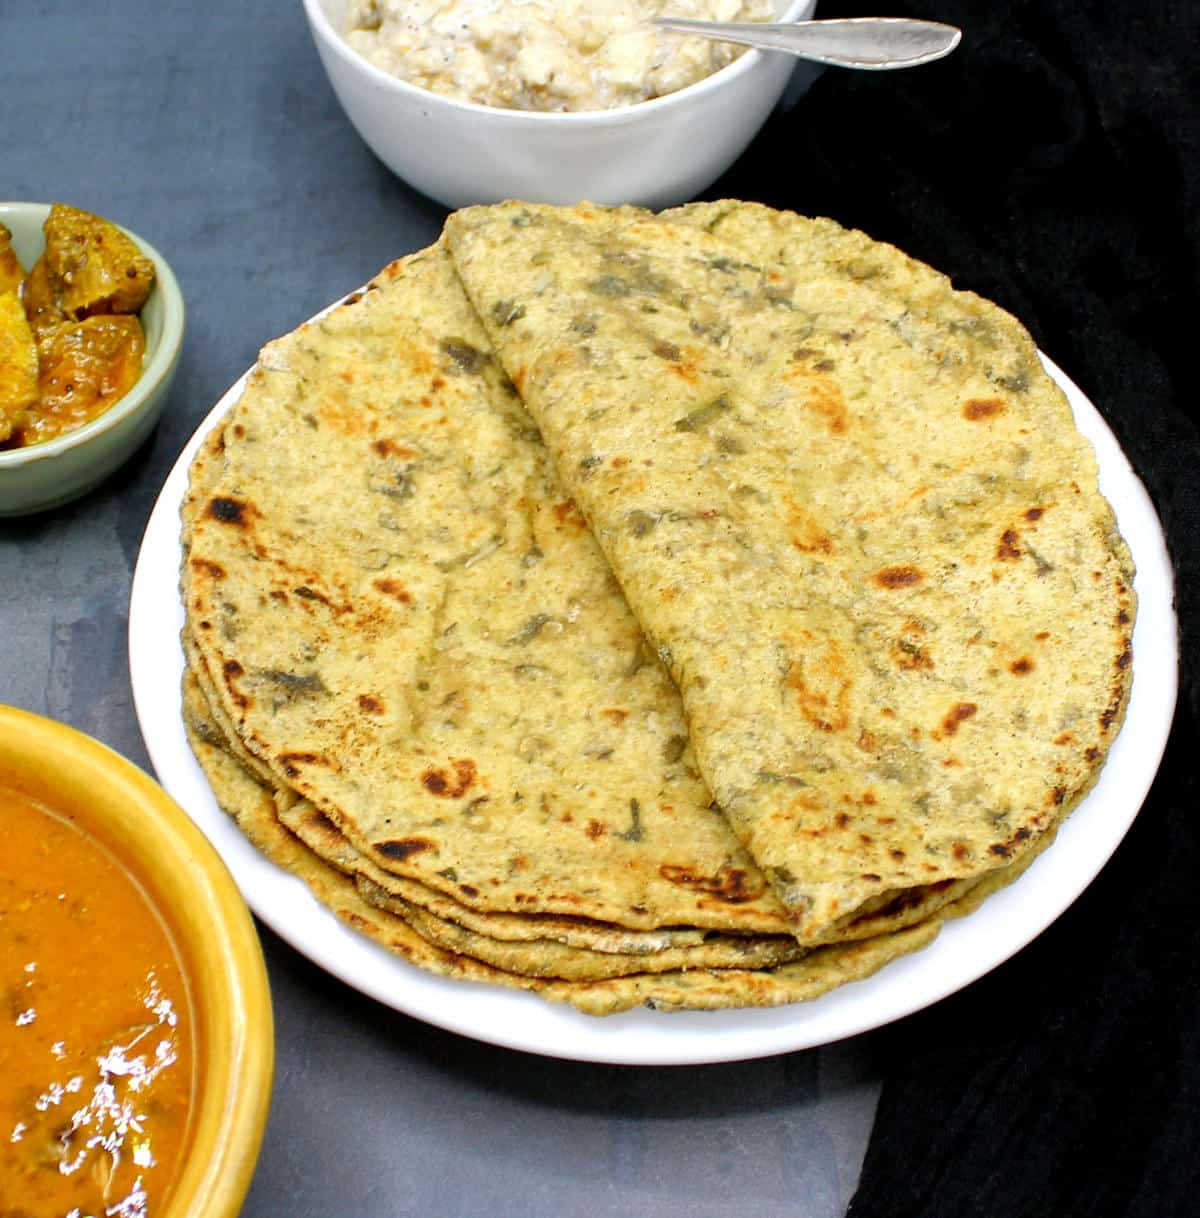 Photo of palak paratha stack served with pickles, dal and raita.